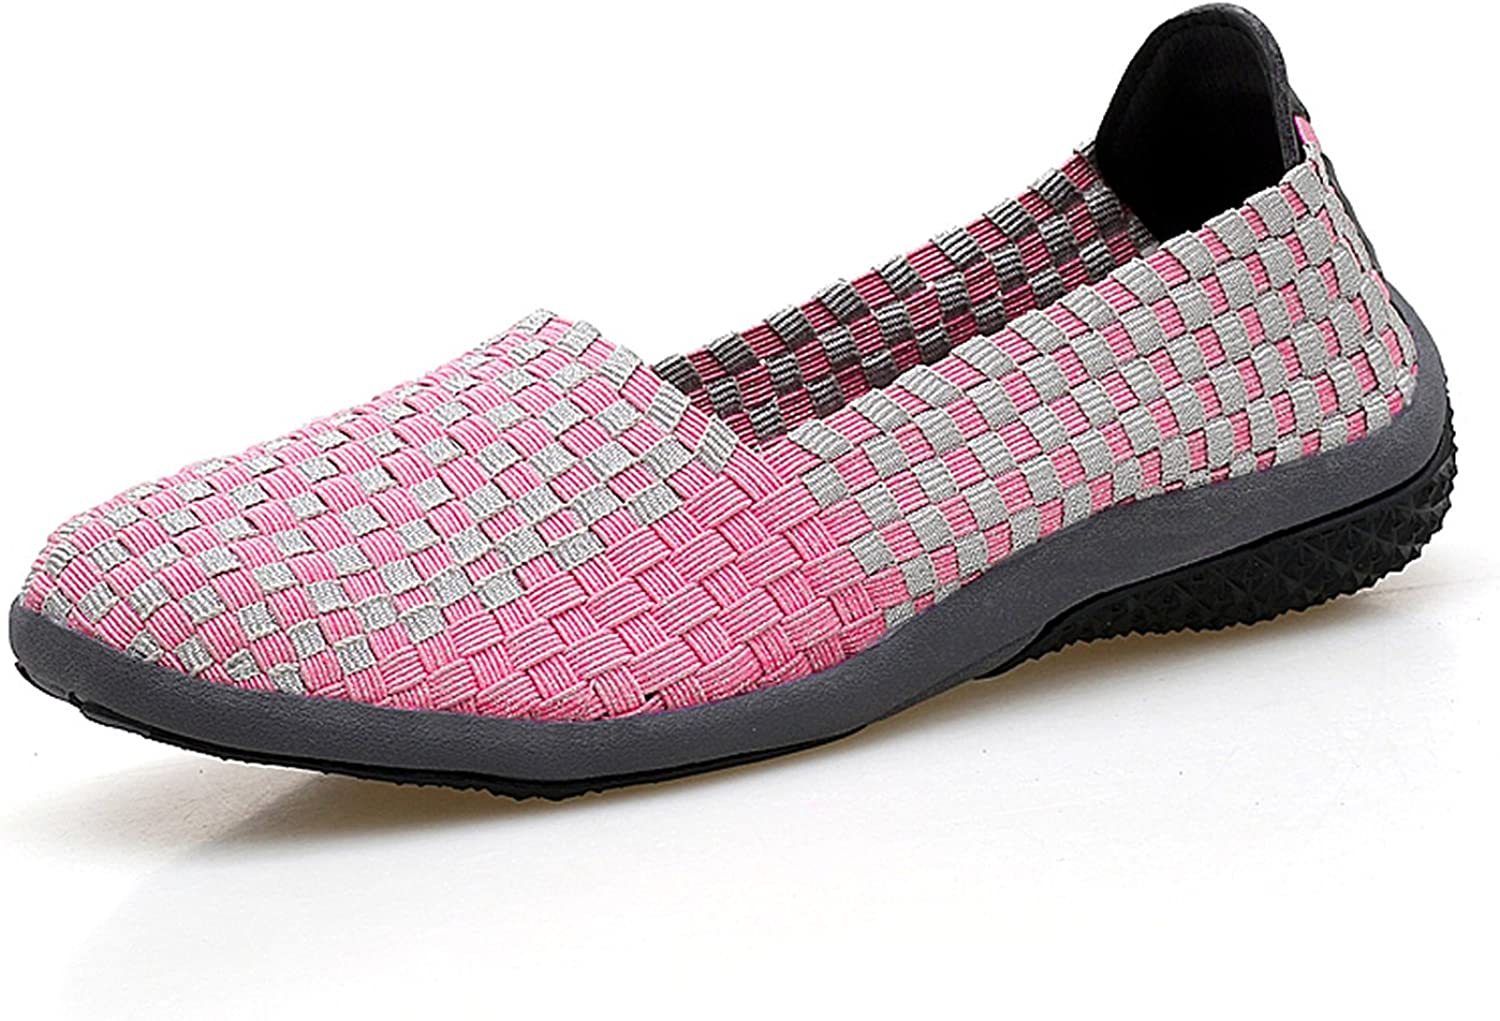 Zcaosma Women Slip On Loafers shoes Women Footwear Woven Breathable Mesh Outdoors Ballet Flats shoes